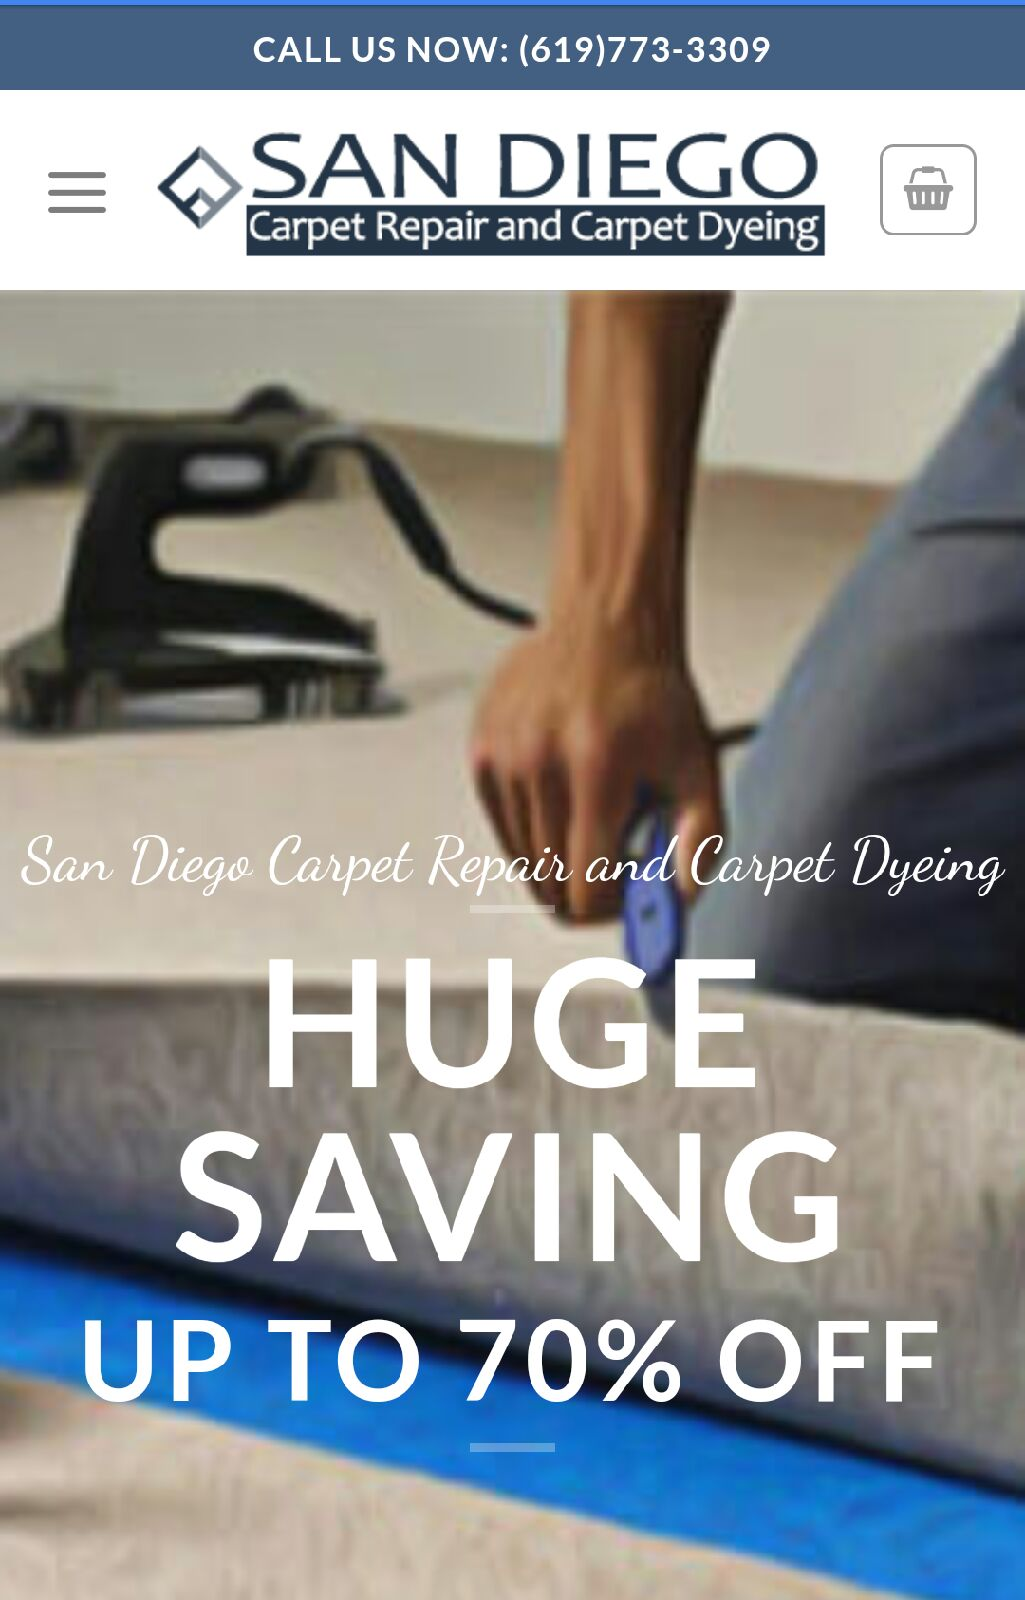 619-773-3309 San Diego carpet repair and carpet dying logo